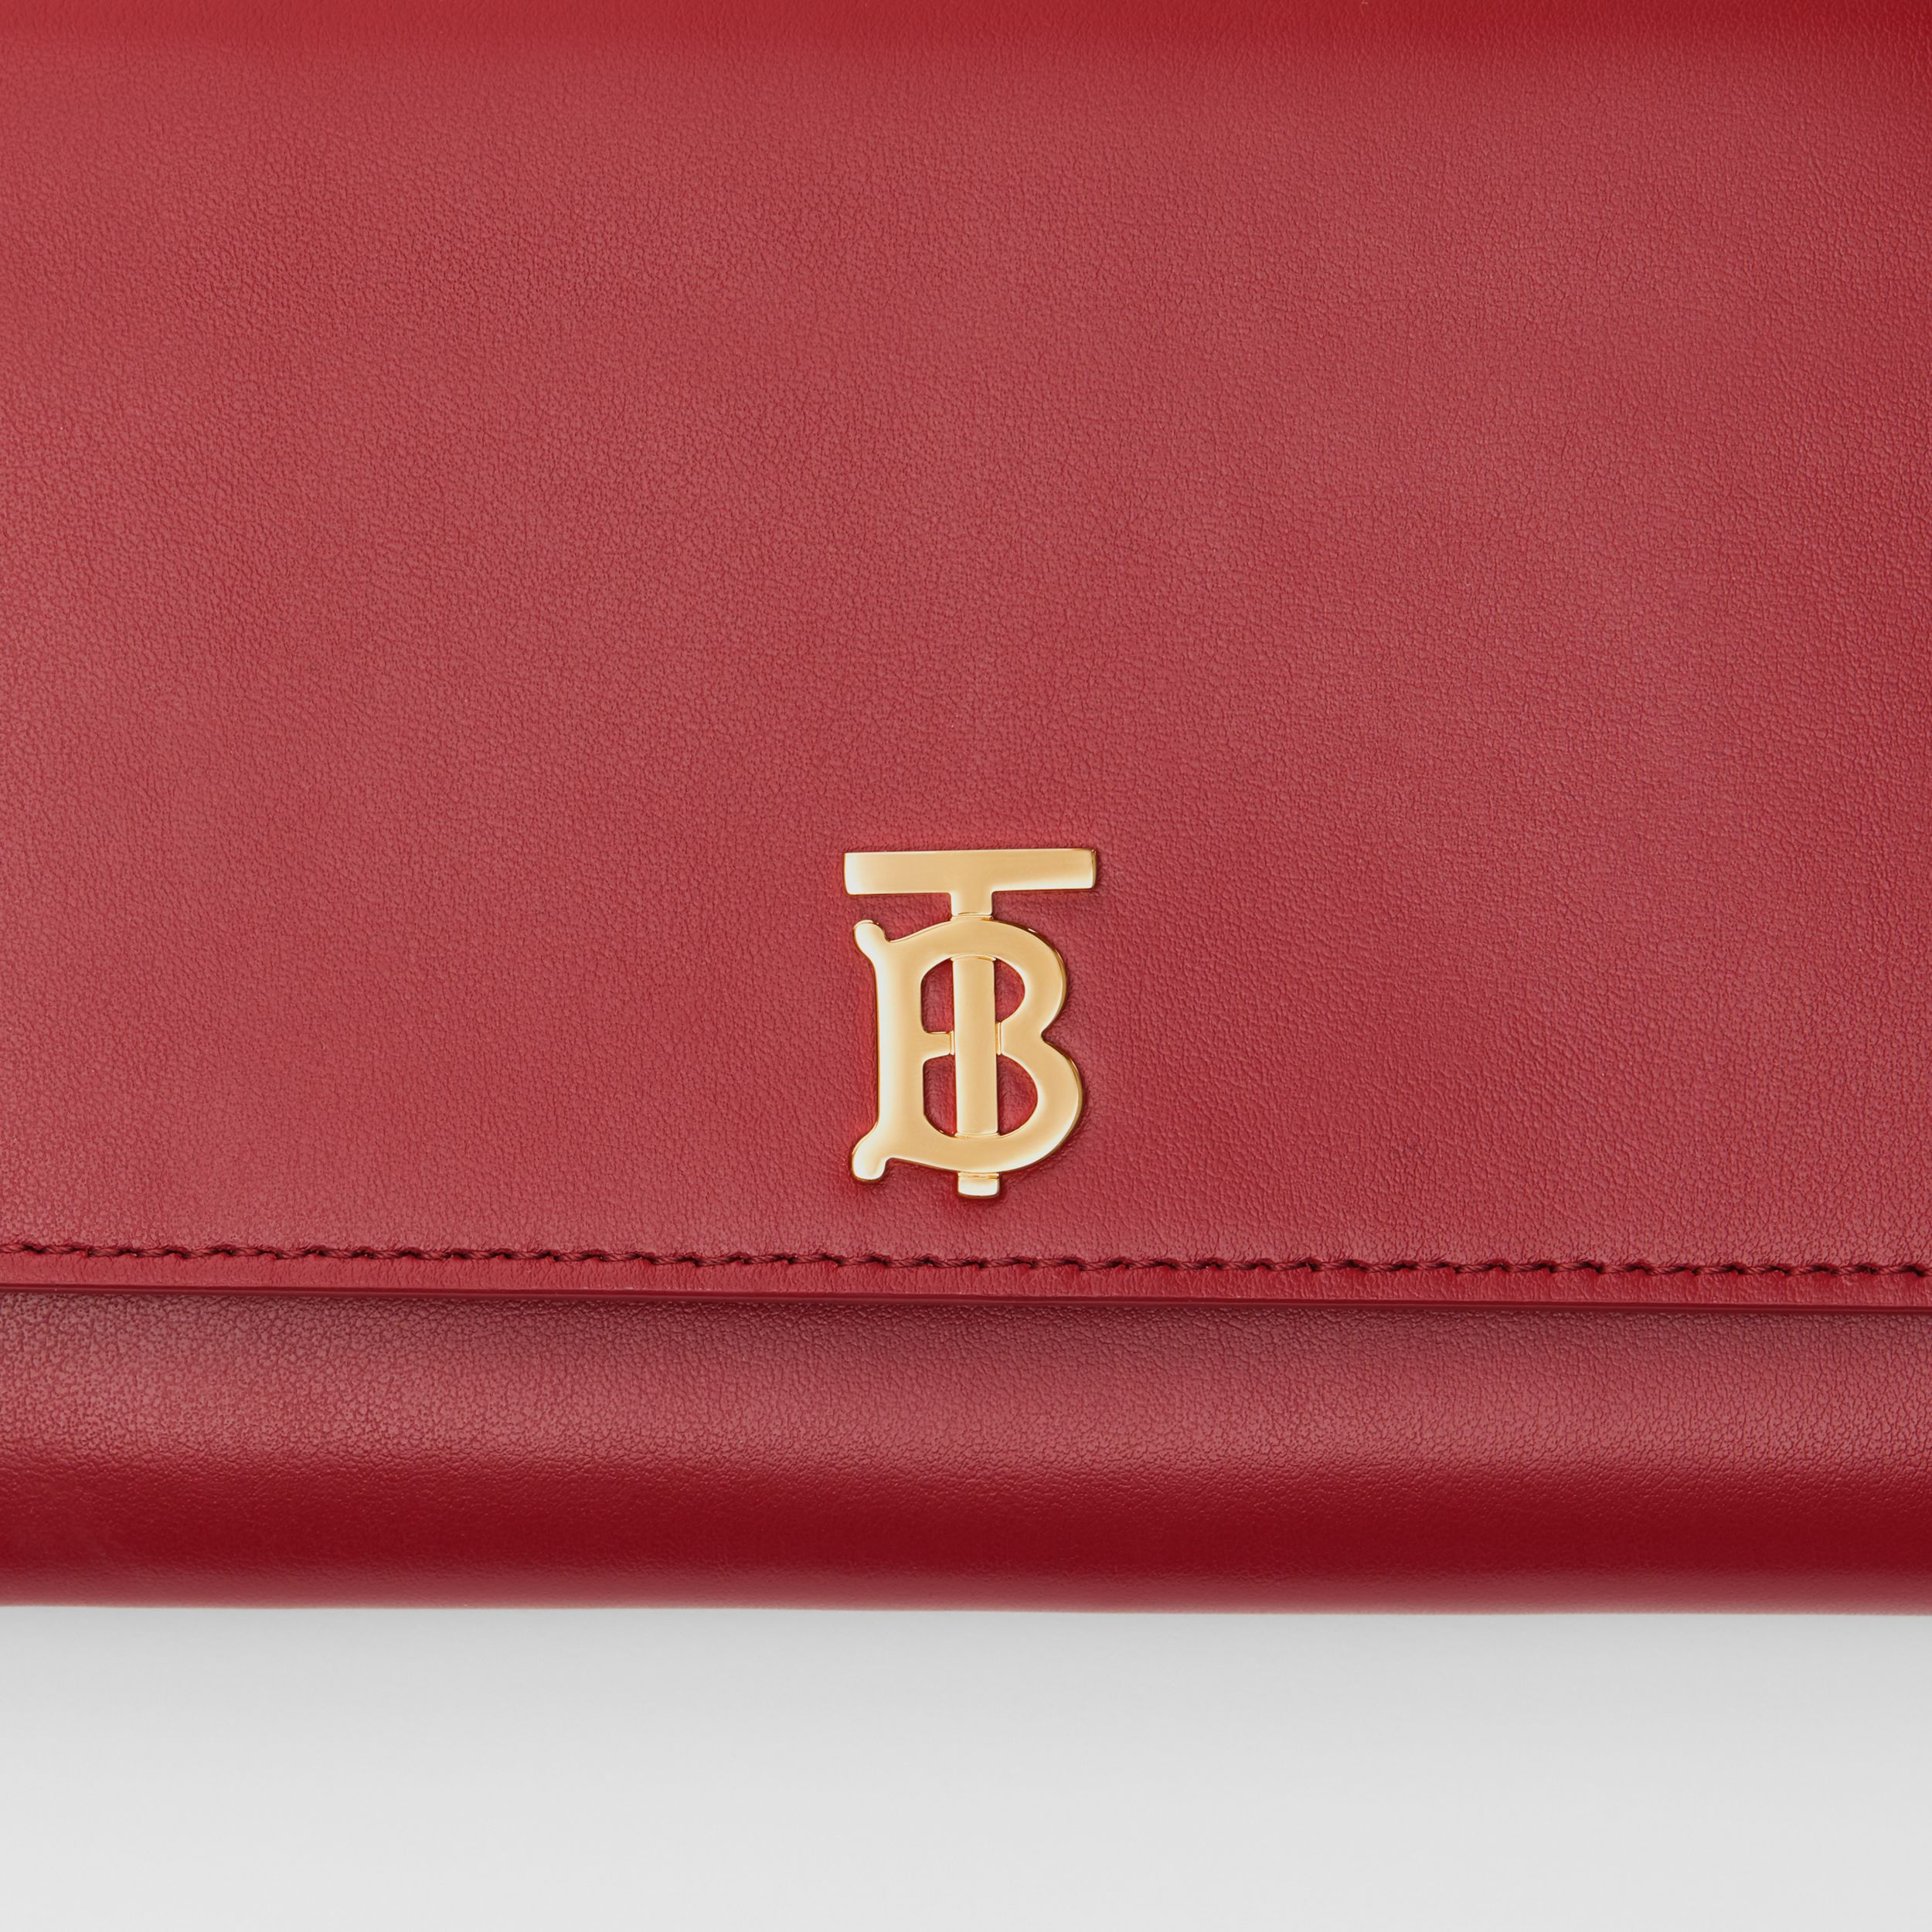 Monogram Motif Leather Wallet with Detachable Strap in Crimson - Women | Burberry - 2